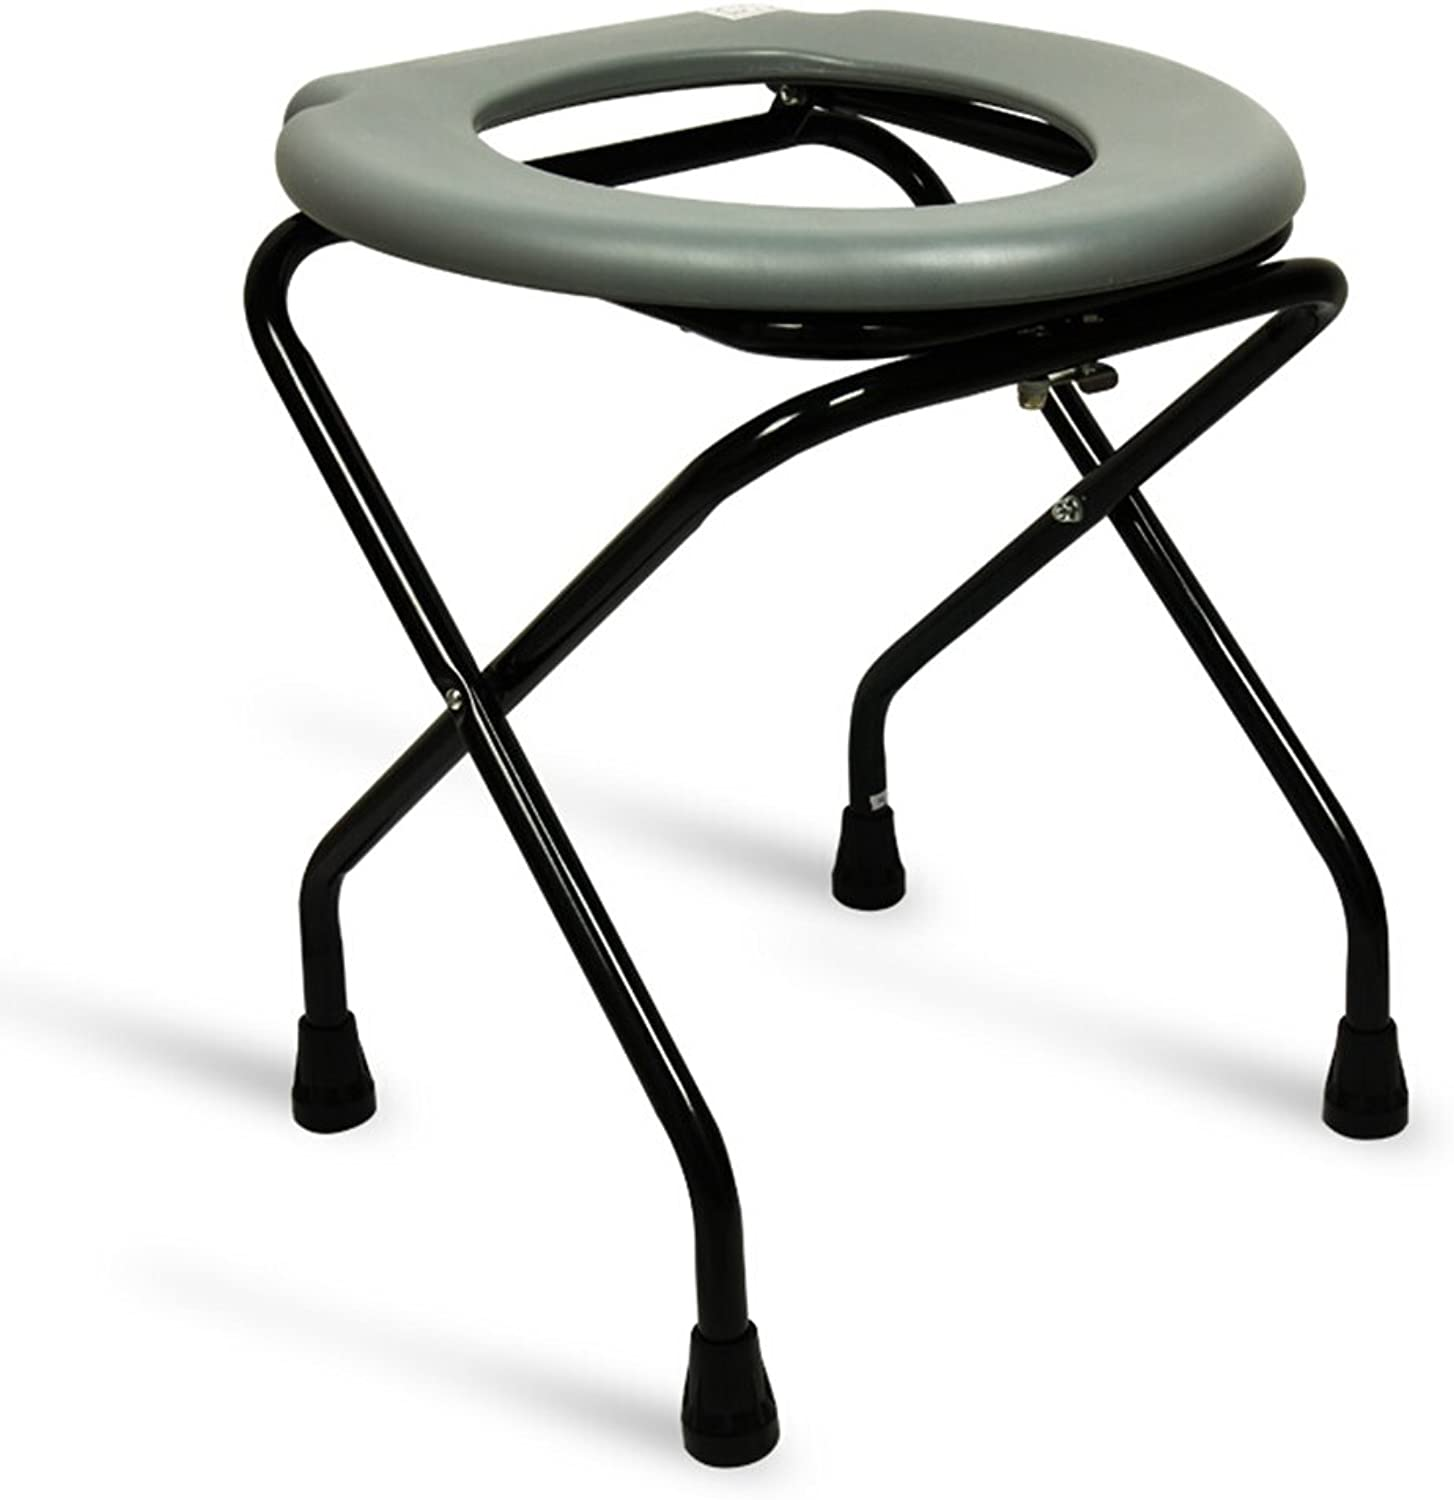 Commode chair, Collapsible Non-slip Disabled person Old man Pregnant women Potty chair